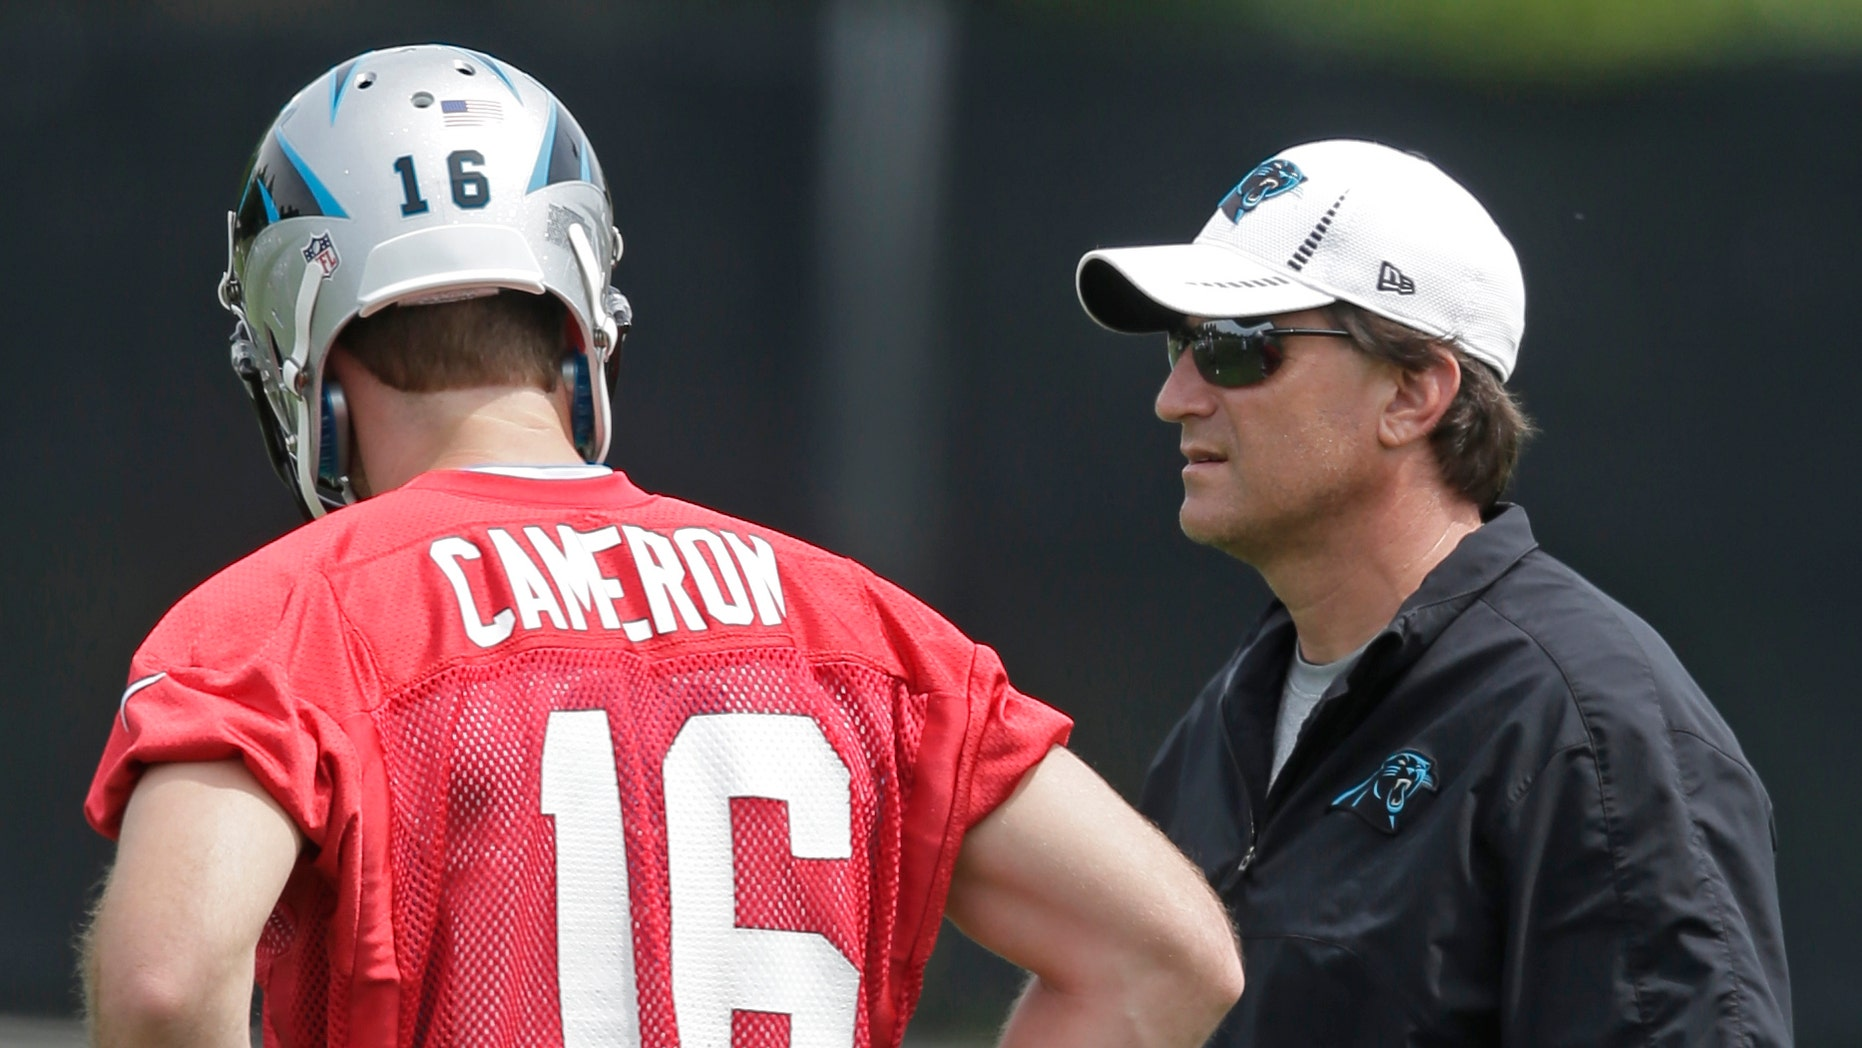 Carolina Panthers offensive coordinator Mike Shula, right, talks with quarterback Colby Cameron, left, during an NFL football rookie camp in Charlotte, N.C., Saturday, May 11, 2013. (AP Photo/Chuck Burton)